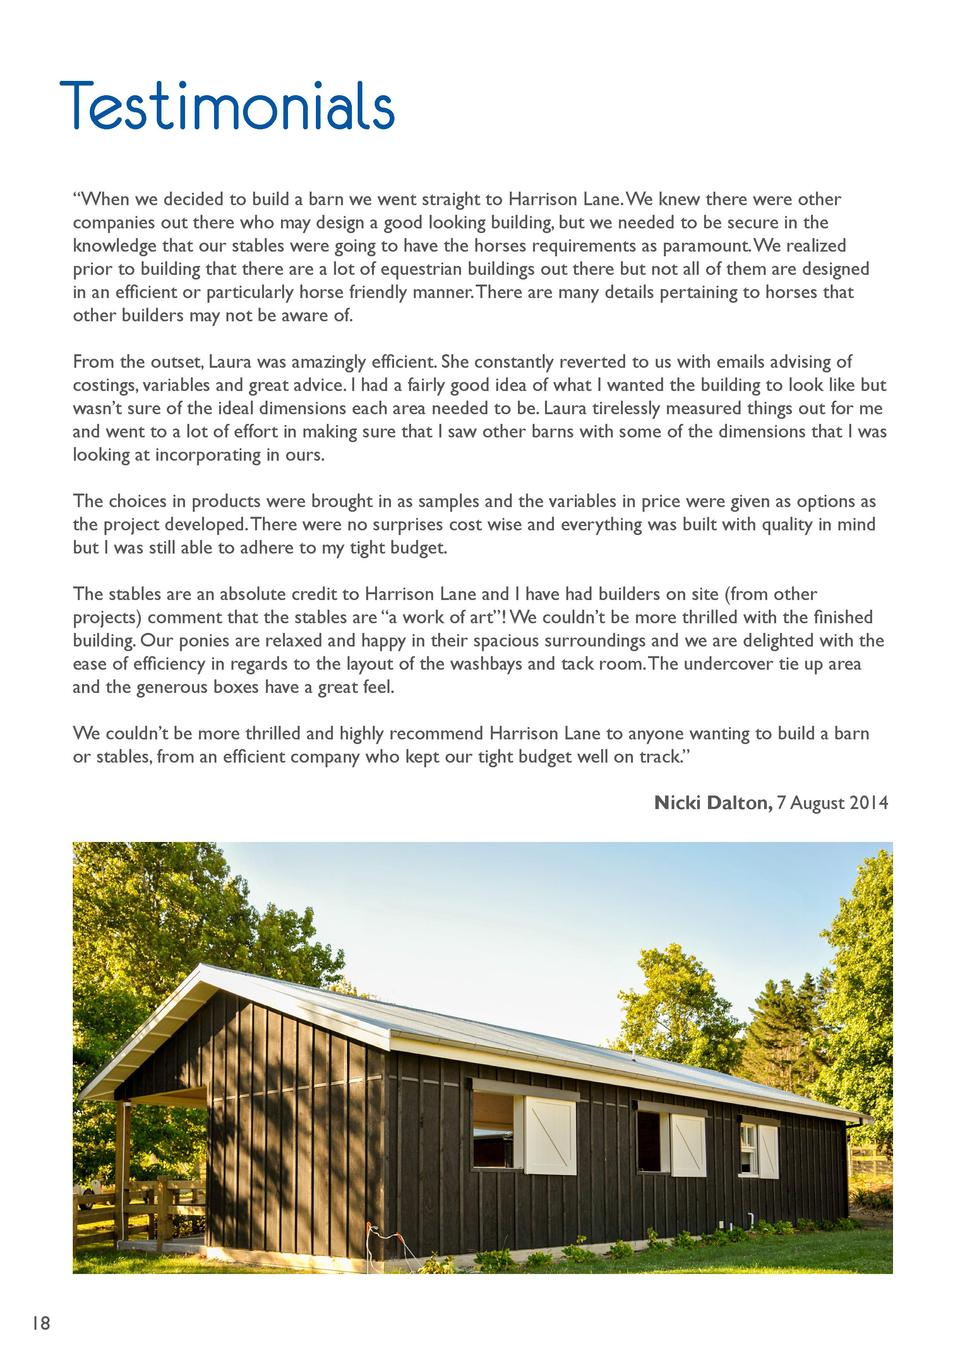 Testimonials    When we decided to build a barn we went straight to Harrison Lane. We knew there were other companies out ...